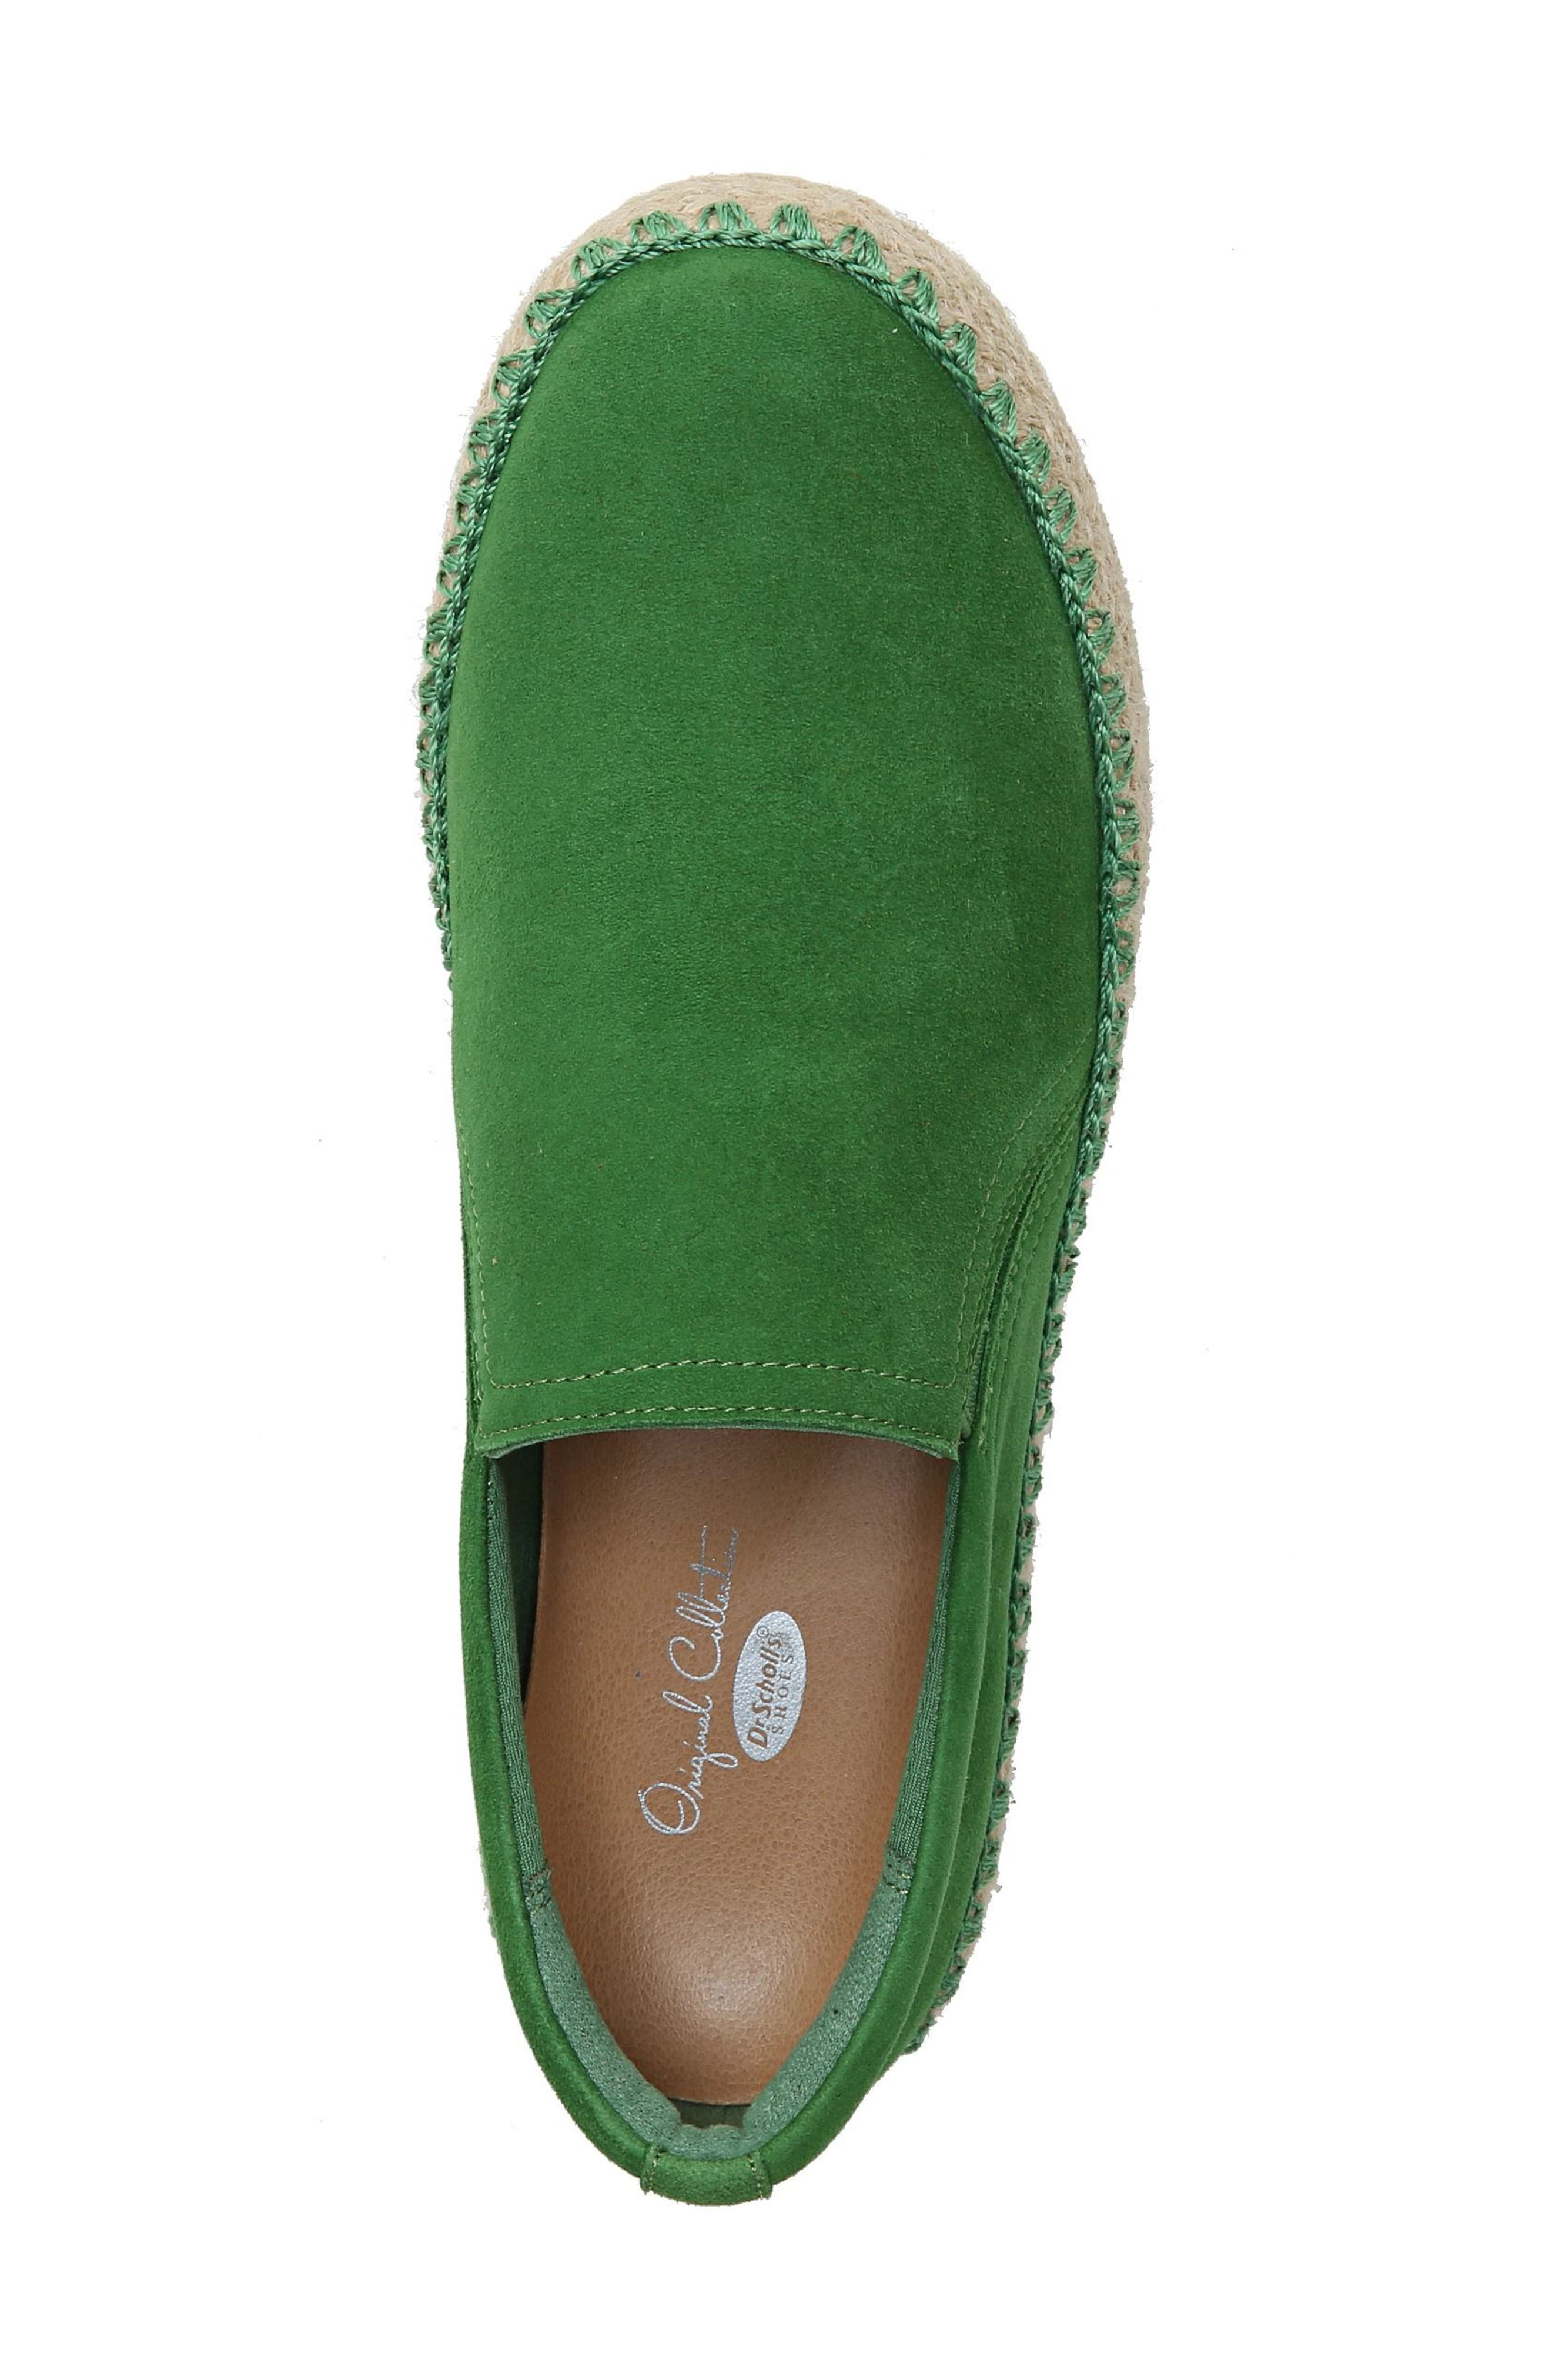 Sunnie Slip-On Sneaker,                             Alternate thumbnail 5, color,                             GREEN SUEDE